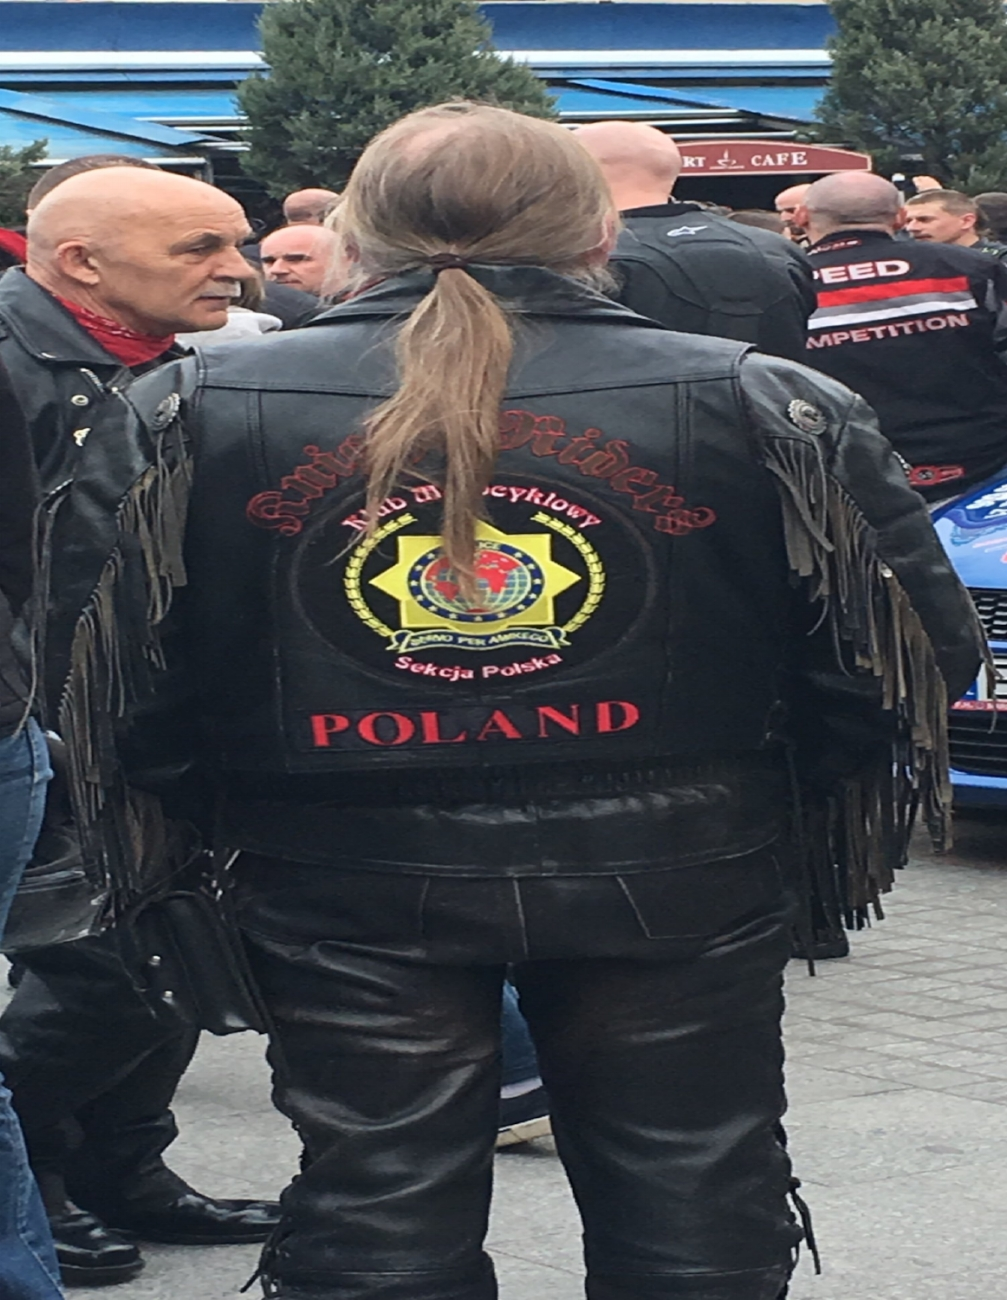 This dude must super-love Poland.